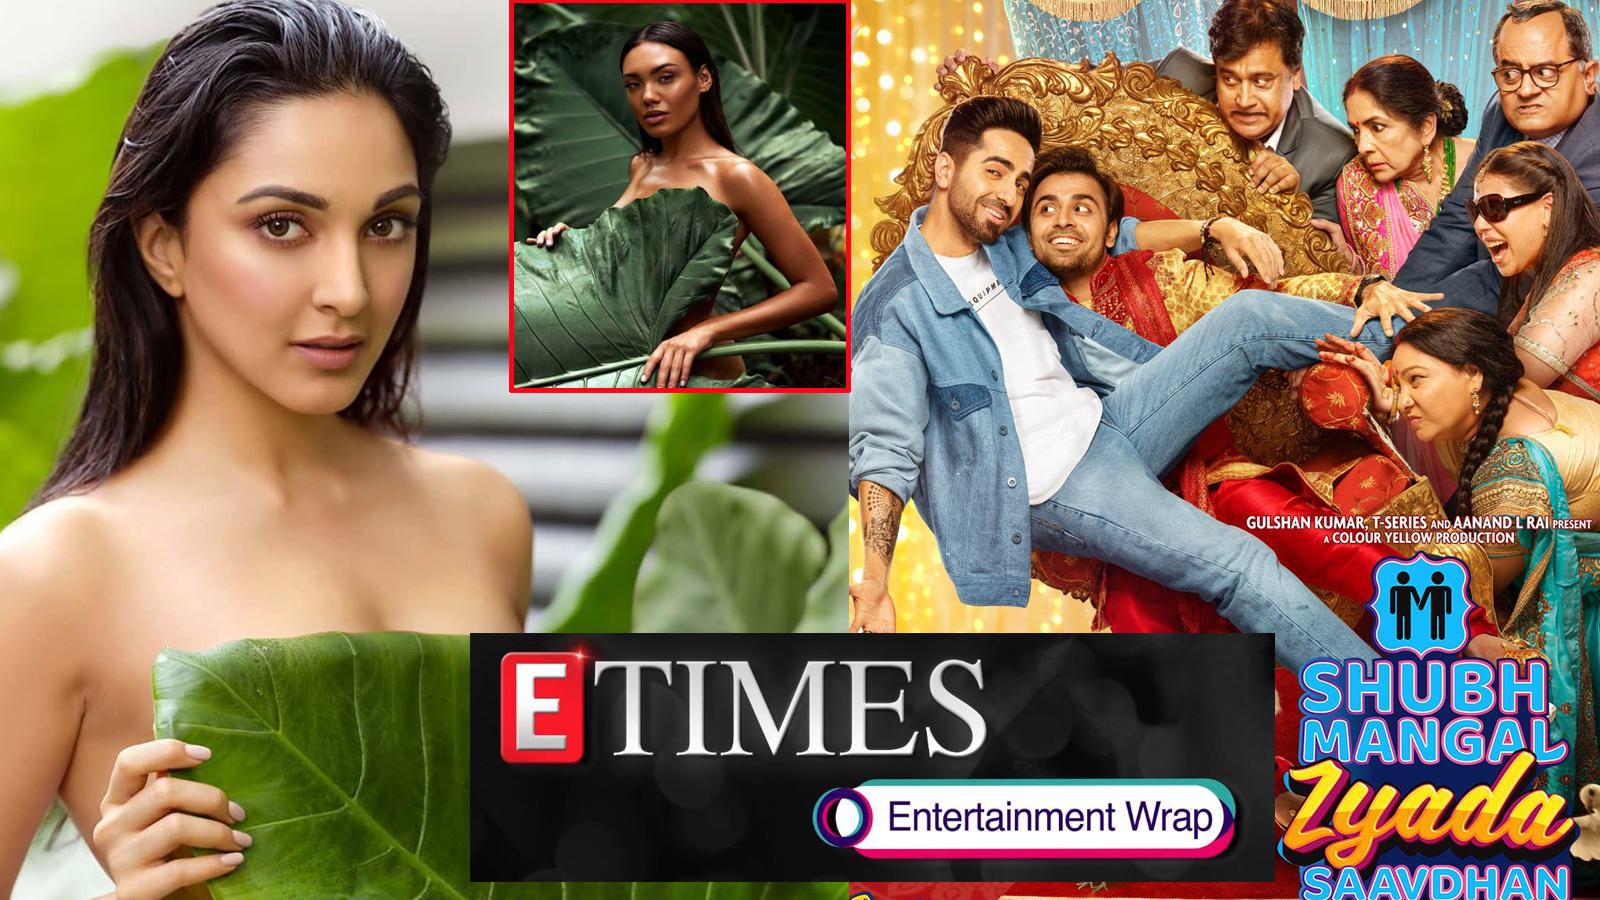 kiara-advanis-bold-photo-gets-called-out-for-plagiarism-us-president-donald-trumps-reaction-on-ayushmann-khurranas-shubh-mangal-zyada-saavdhan-and-more